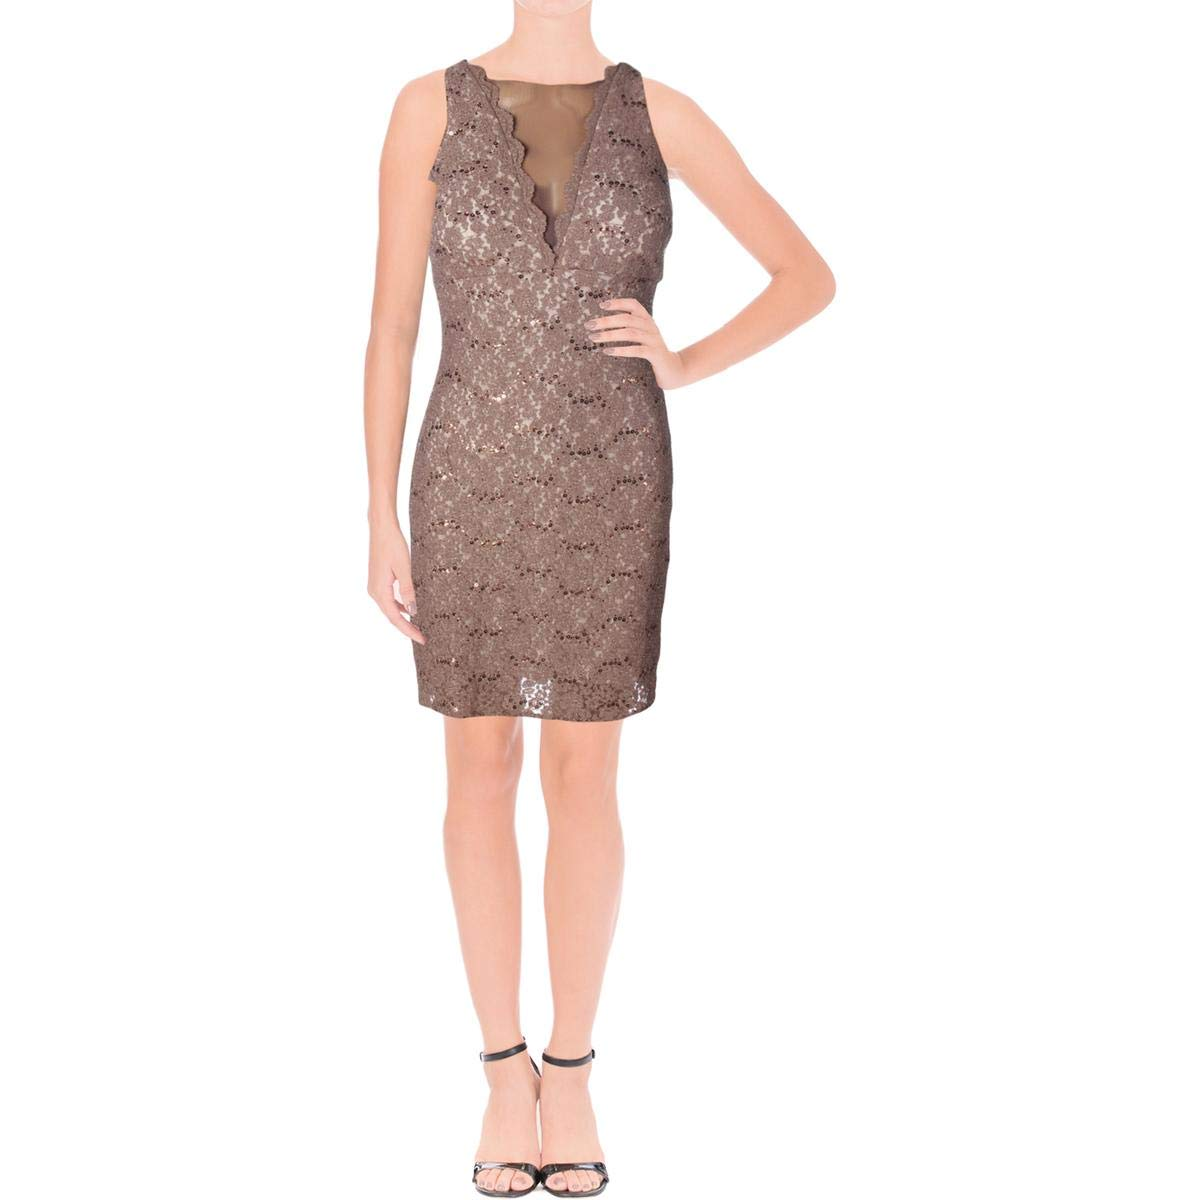 f1c167fa073 Nightway Sequined Lace Cocktail Dress at Amazon Women s Clothing store